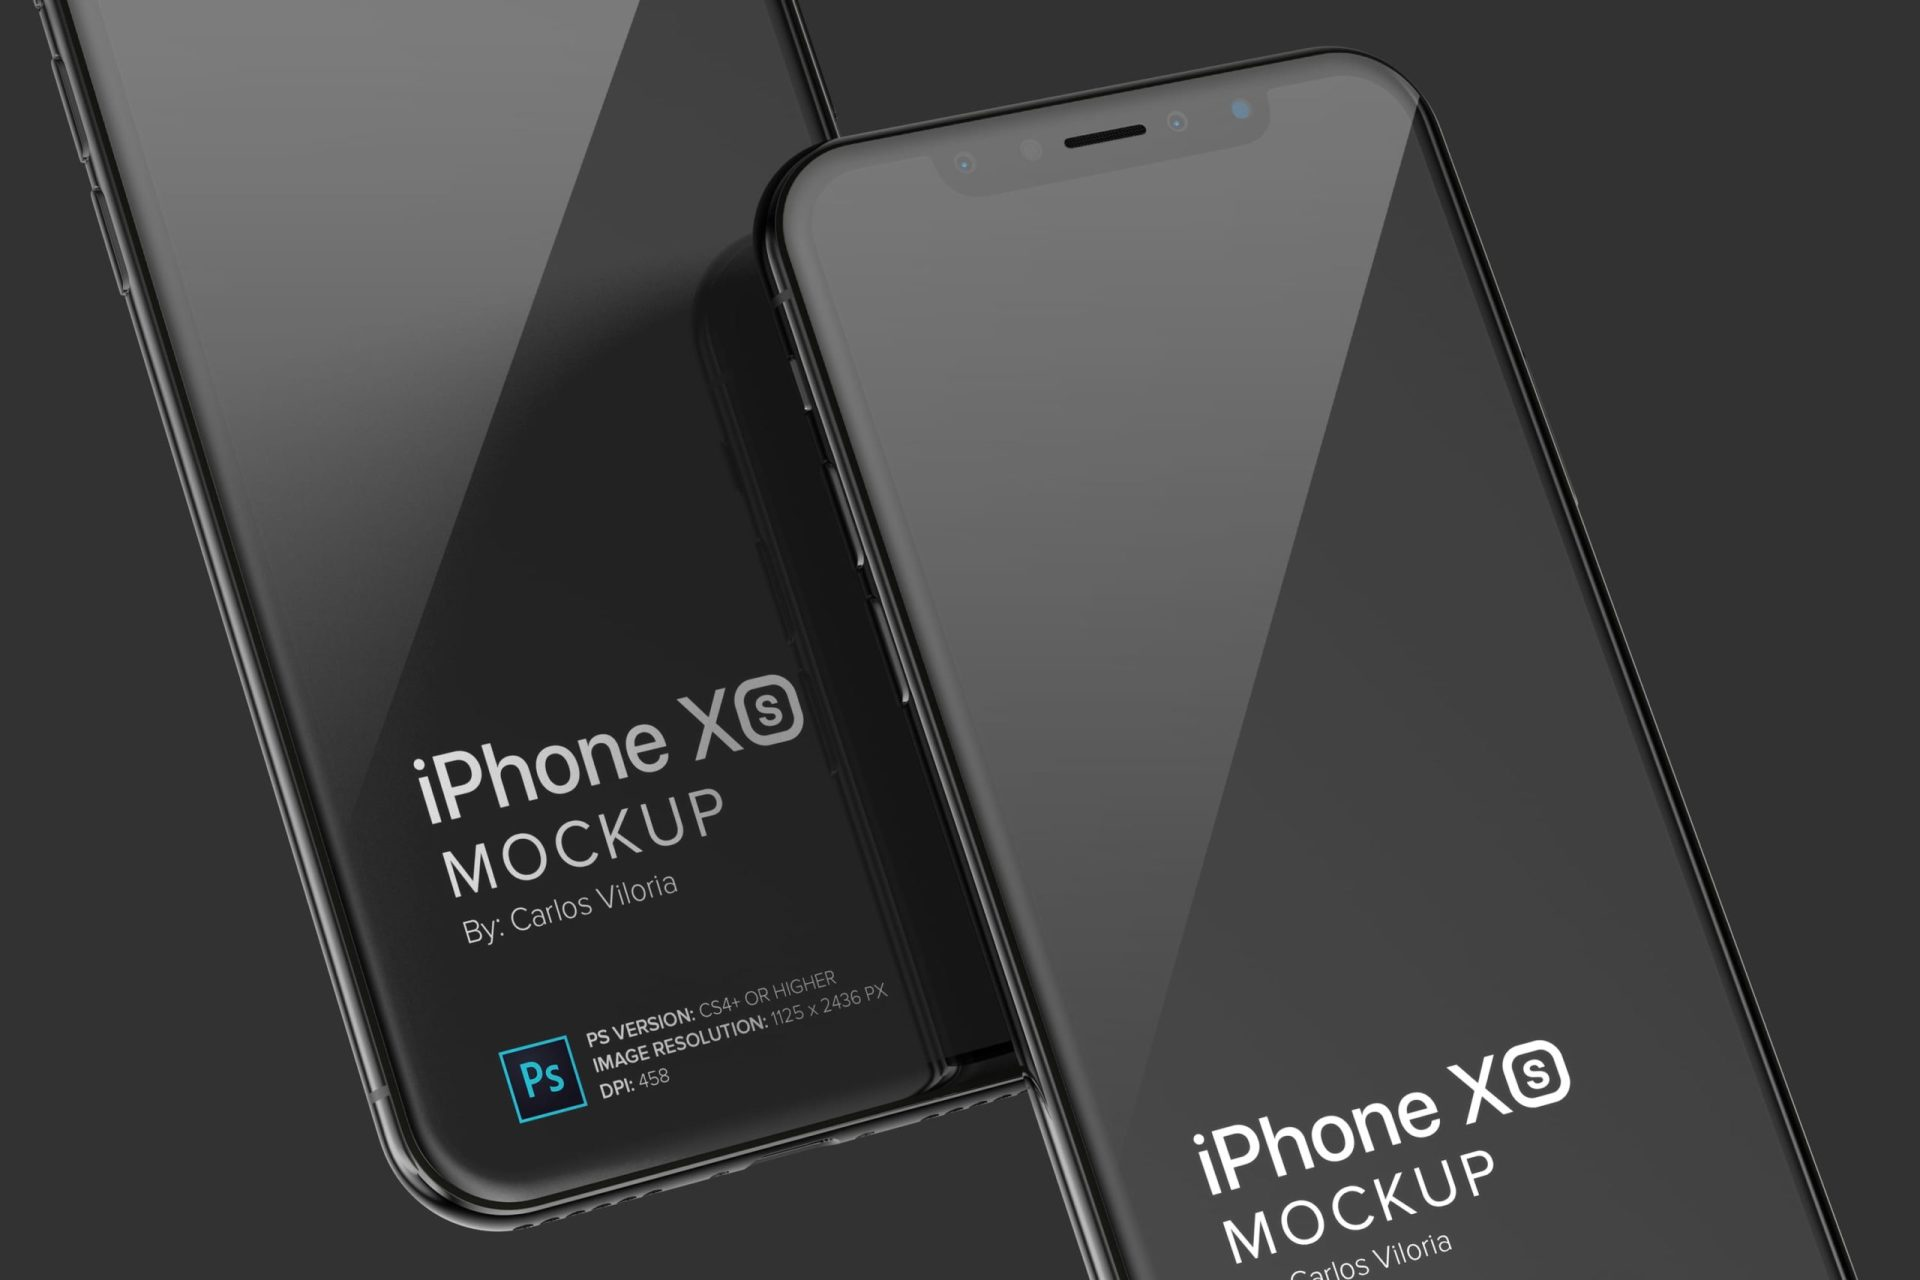 iPhone XS Mockup to Showcase Mobile Aplications